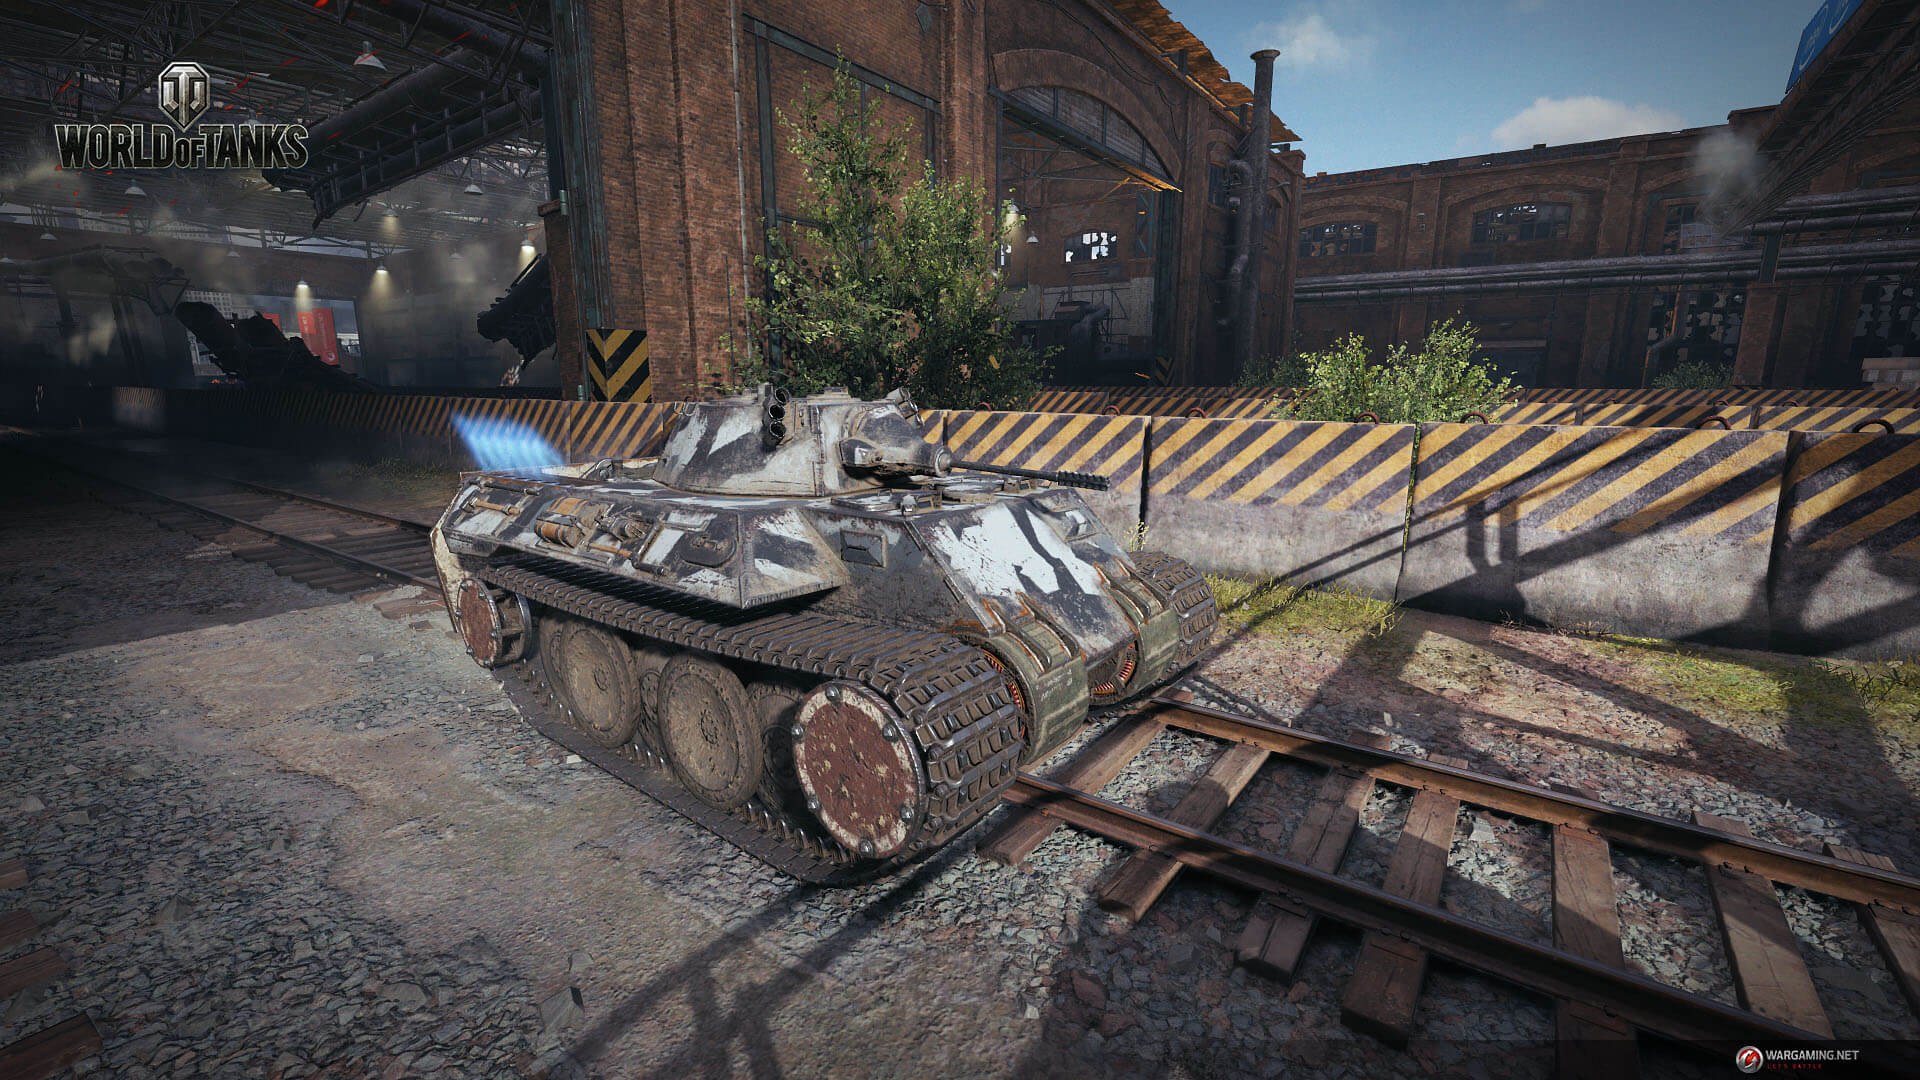 Обои World of tanks, мир танков, wot, chaffee sport, wargaming net, wg. Игры foto 9